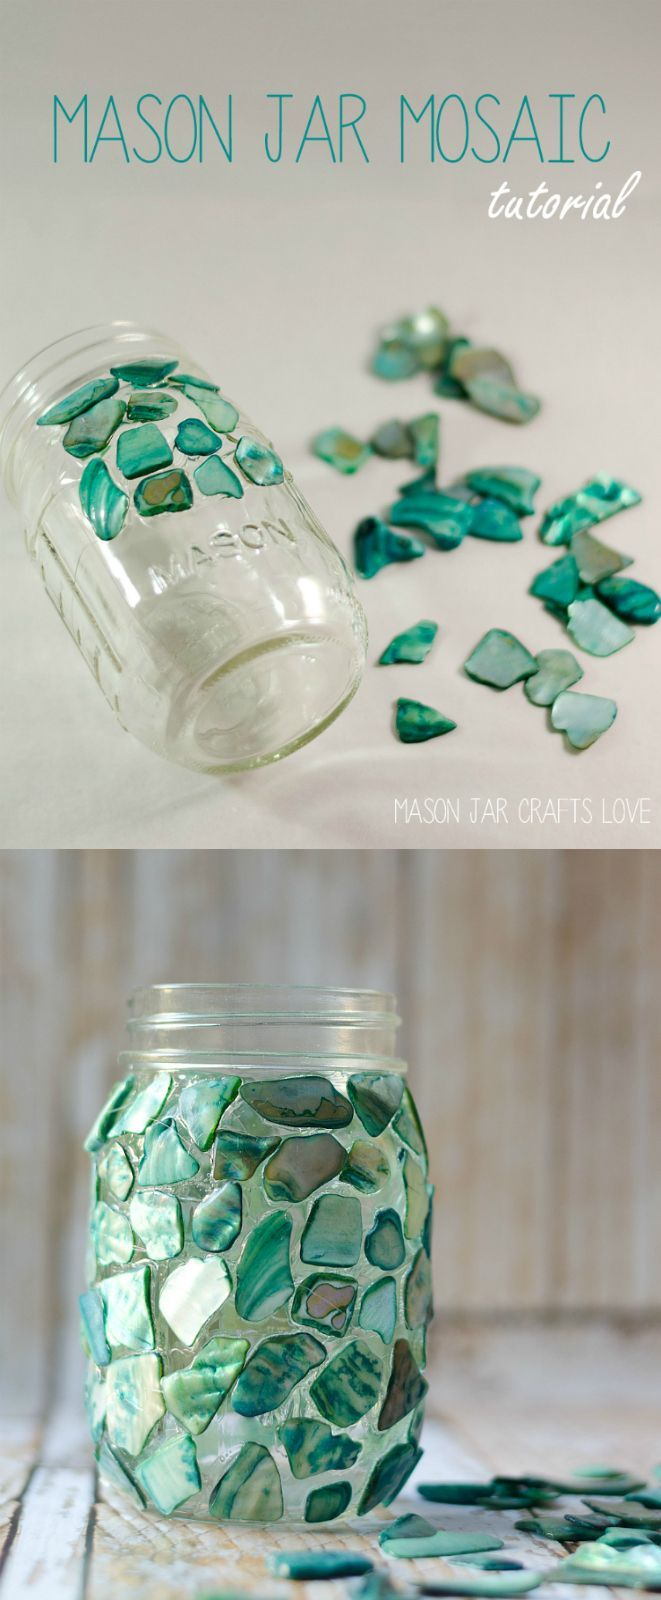 Diy Crafts Mason Jar Craft Ideas Mason Jar Mosaic Mosaic Craft